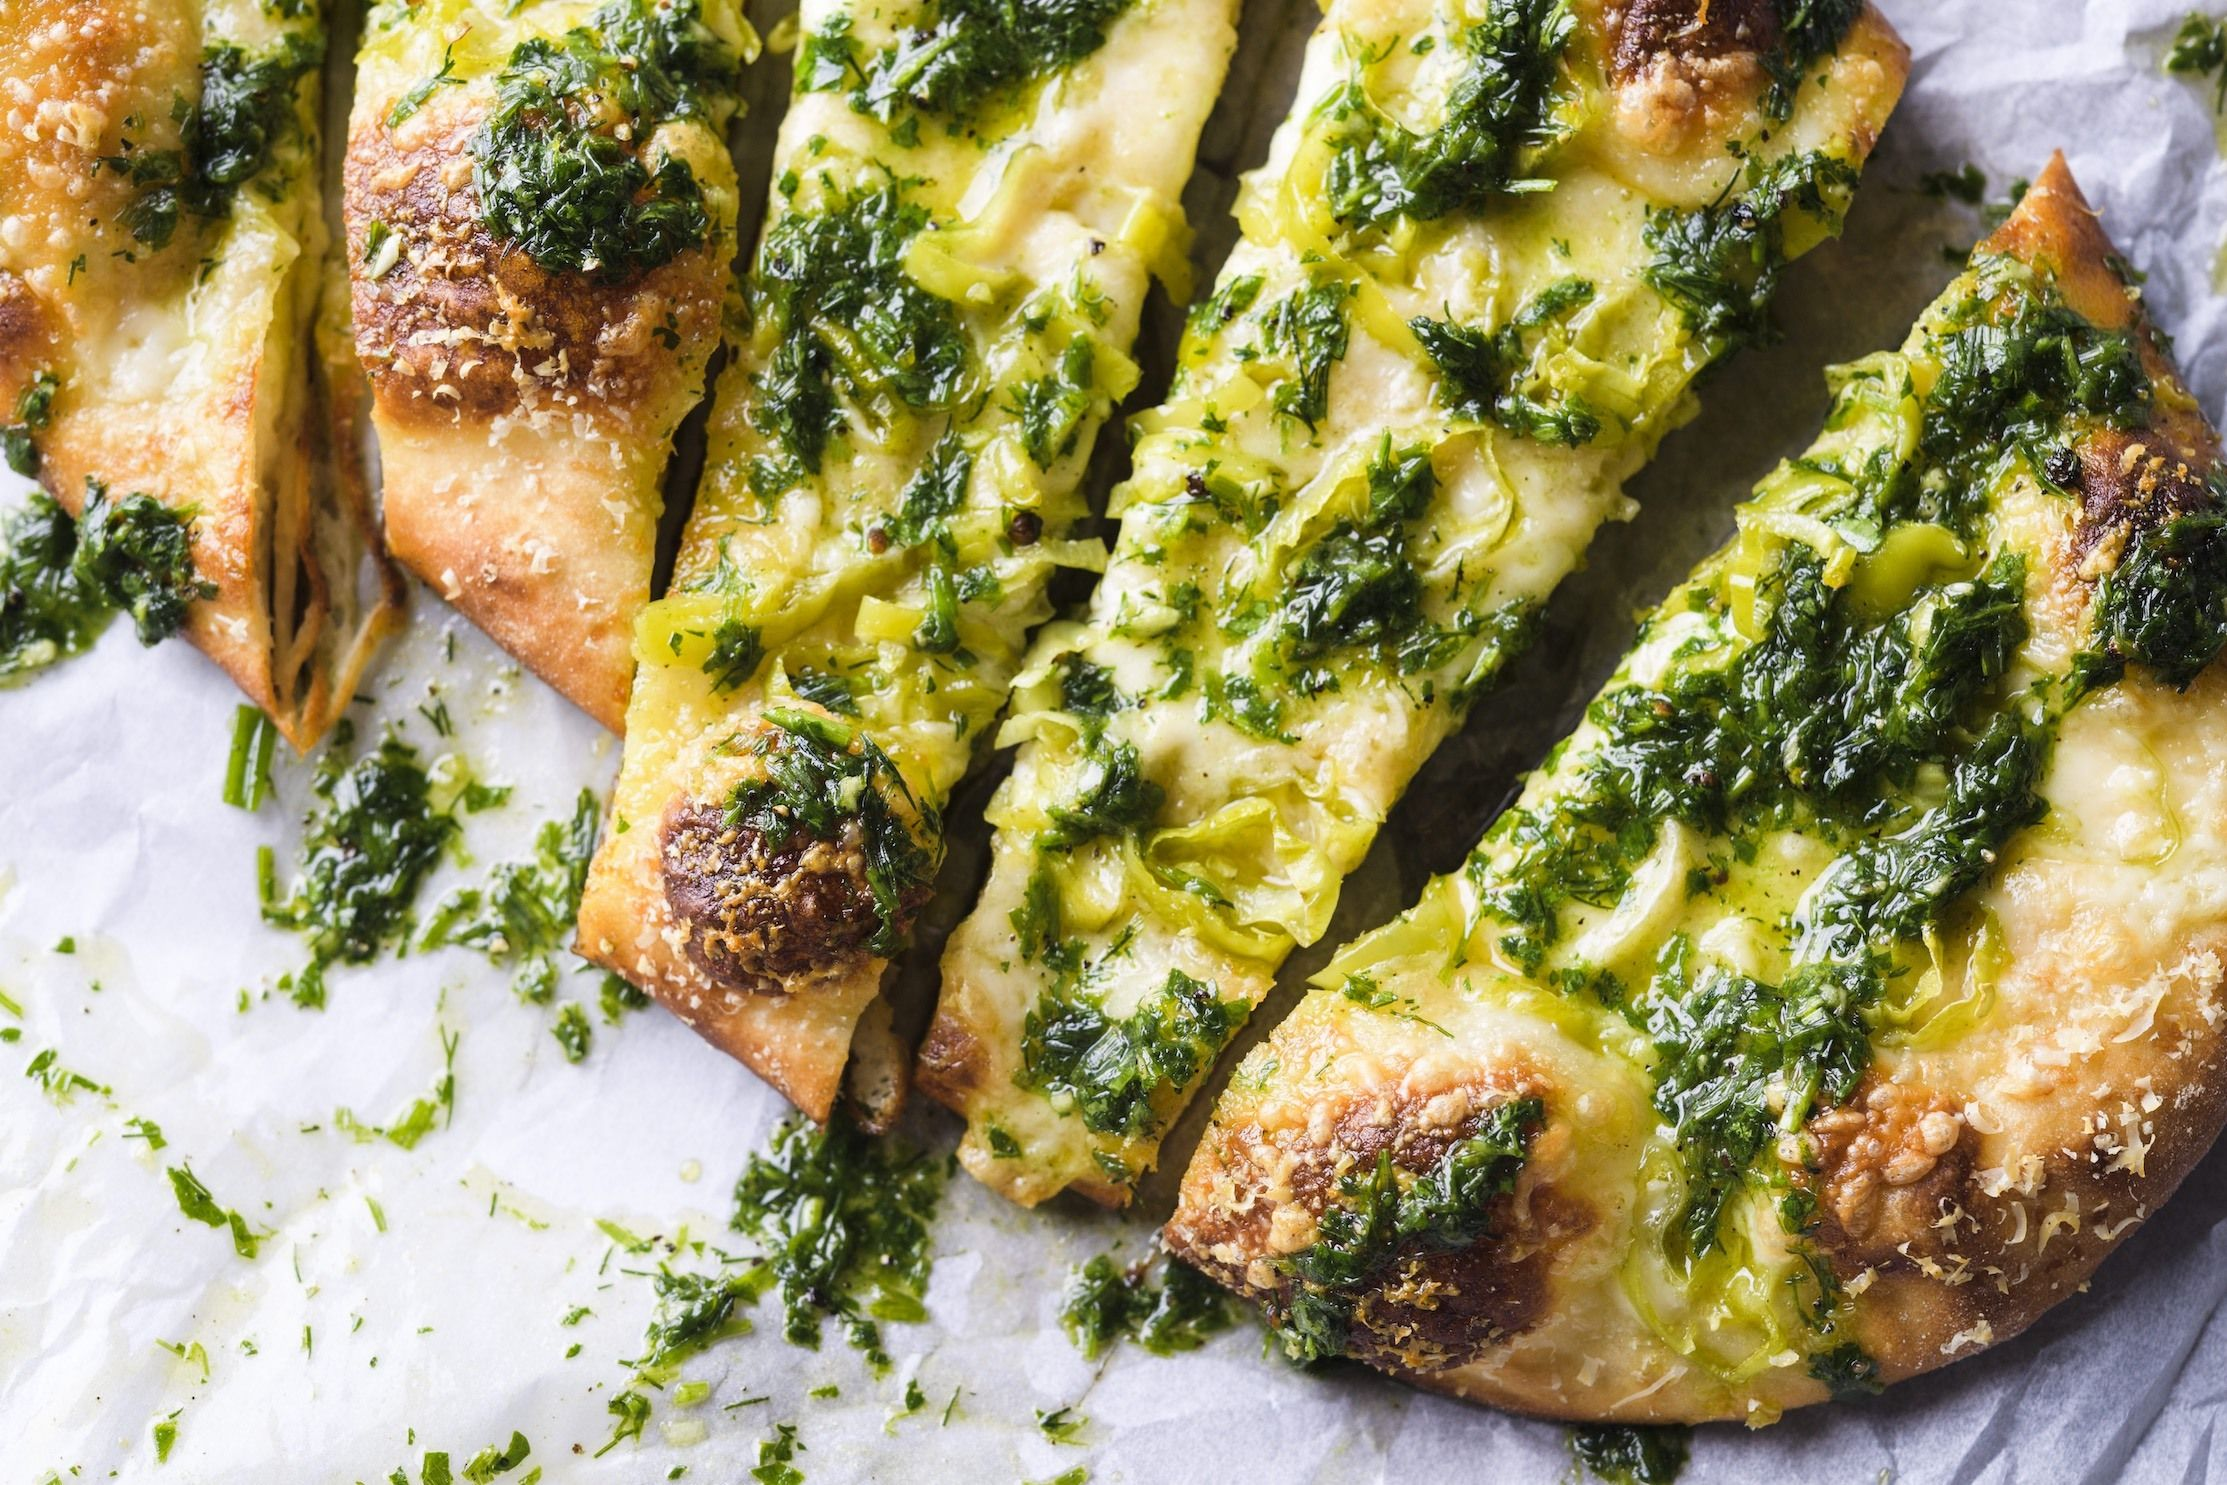 Peperoncini and Cheese Pizzas with Garlic-Herb Oil